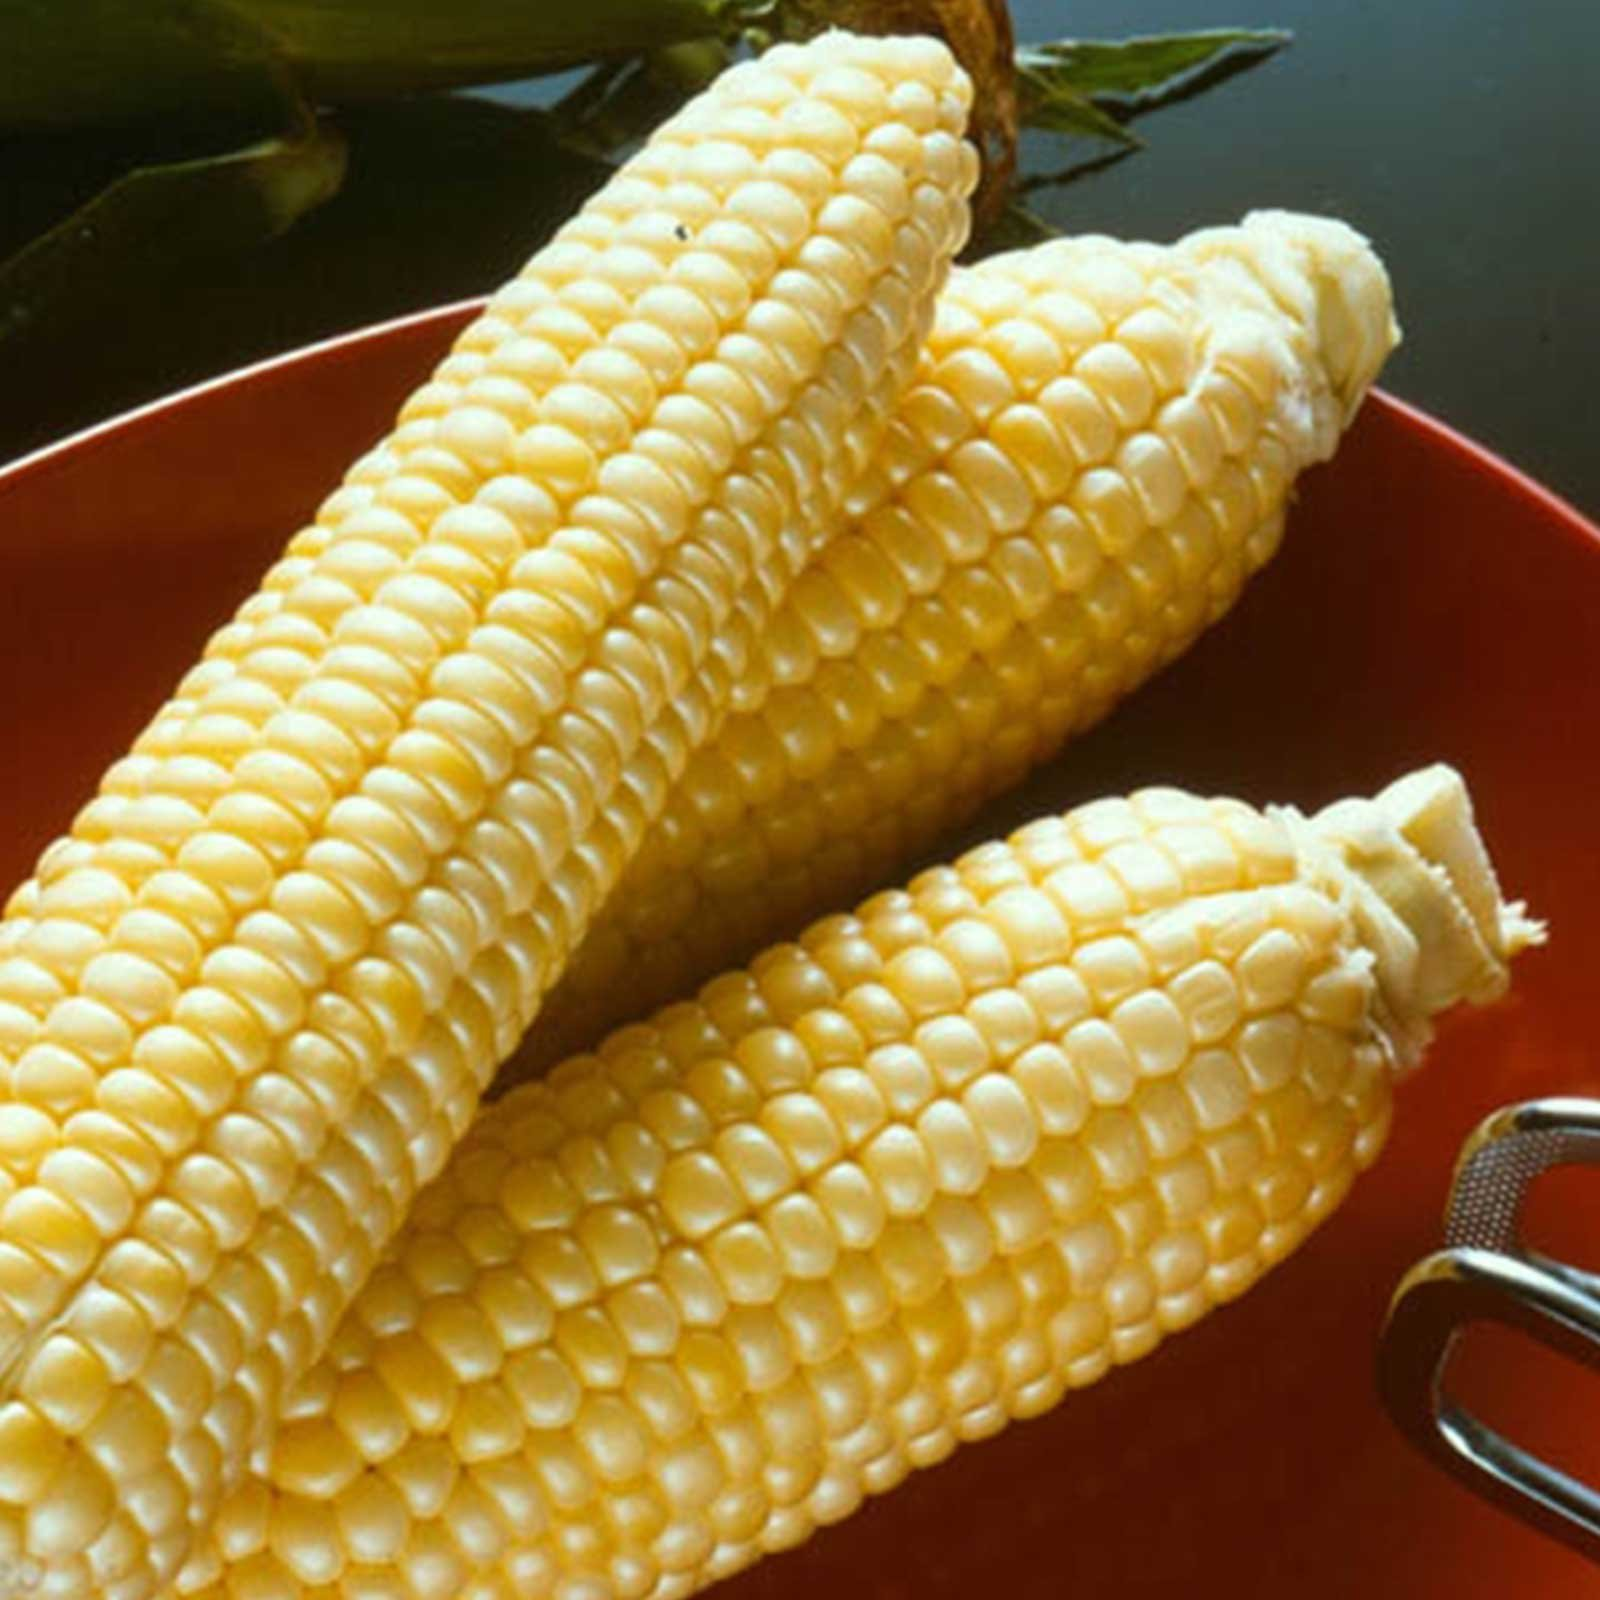 Sugar Buns Hybrid Corn Garden Seed (Treated) - 5 Lb - Non-GMO, Sugary Enhanced (SE), Vegetable Gardening Seeds - Yellow Sweet Corn by Mountain Valley Seed Company (Image #1)